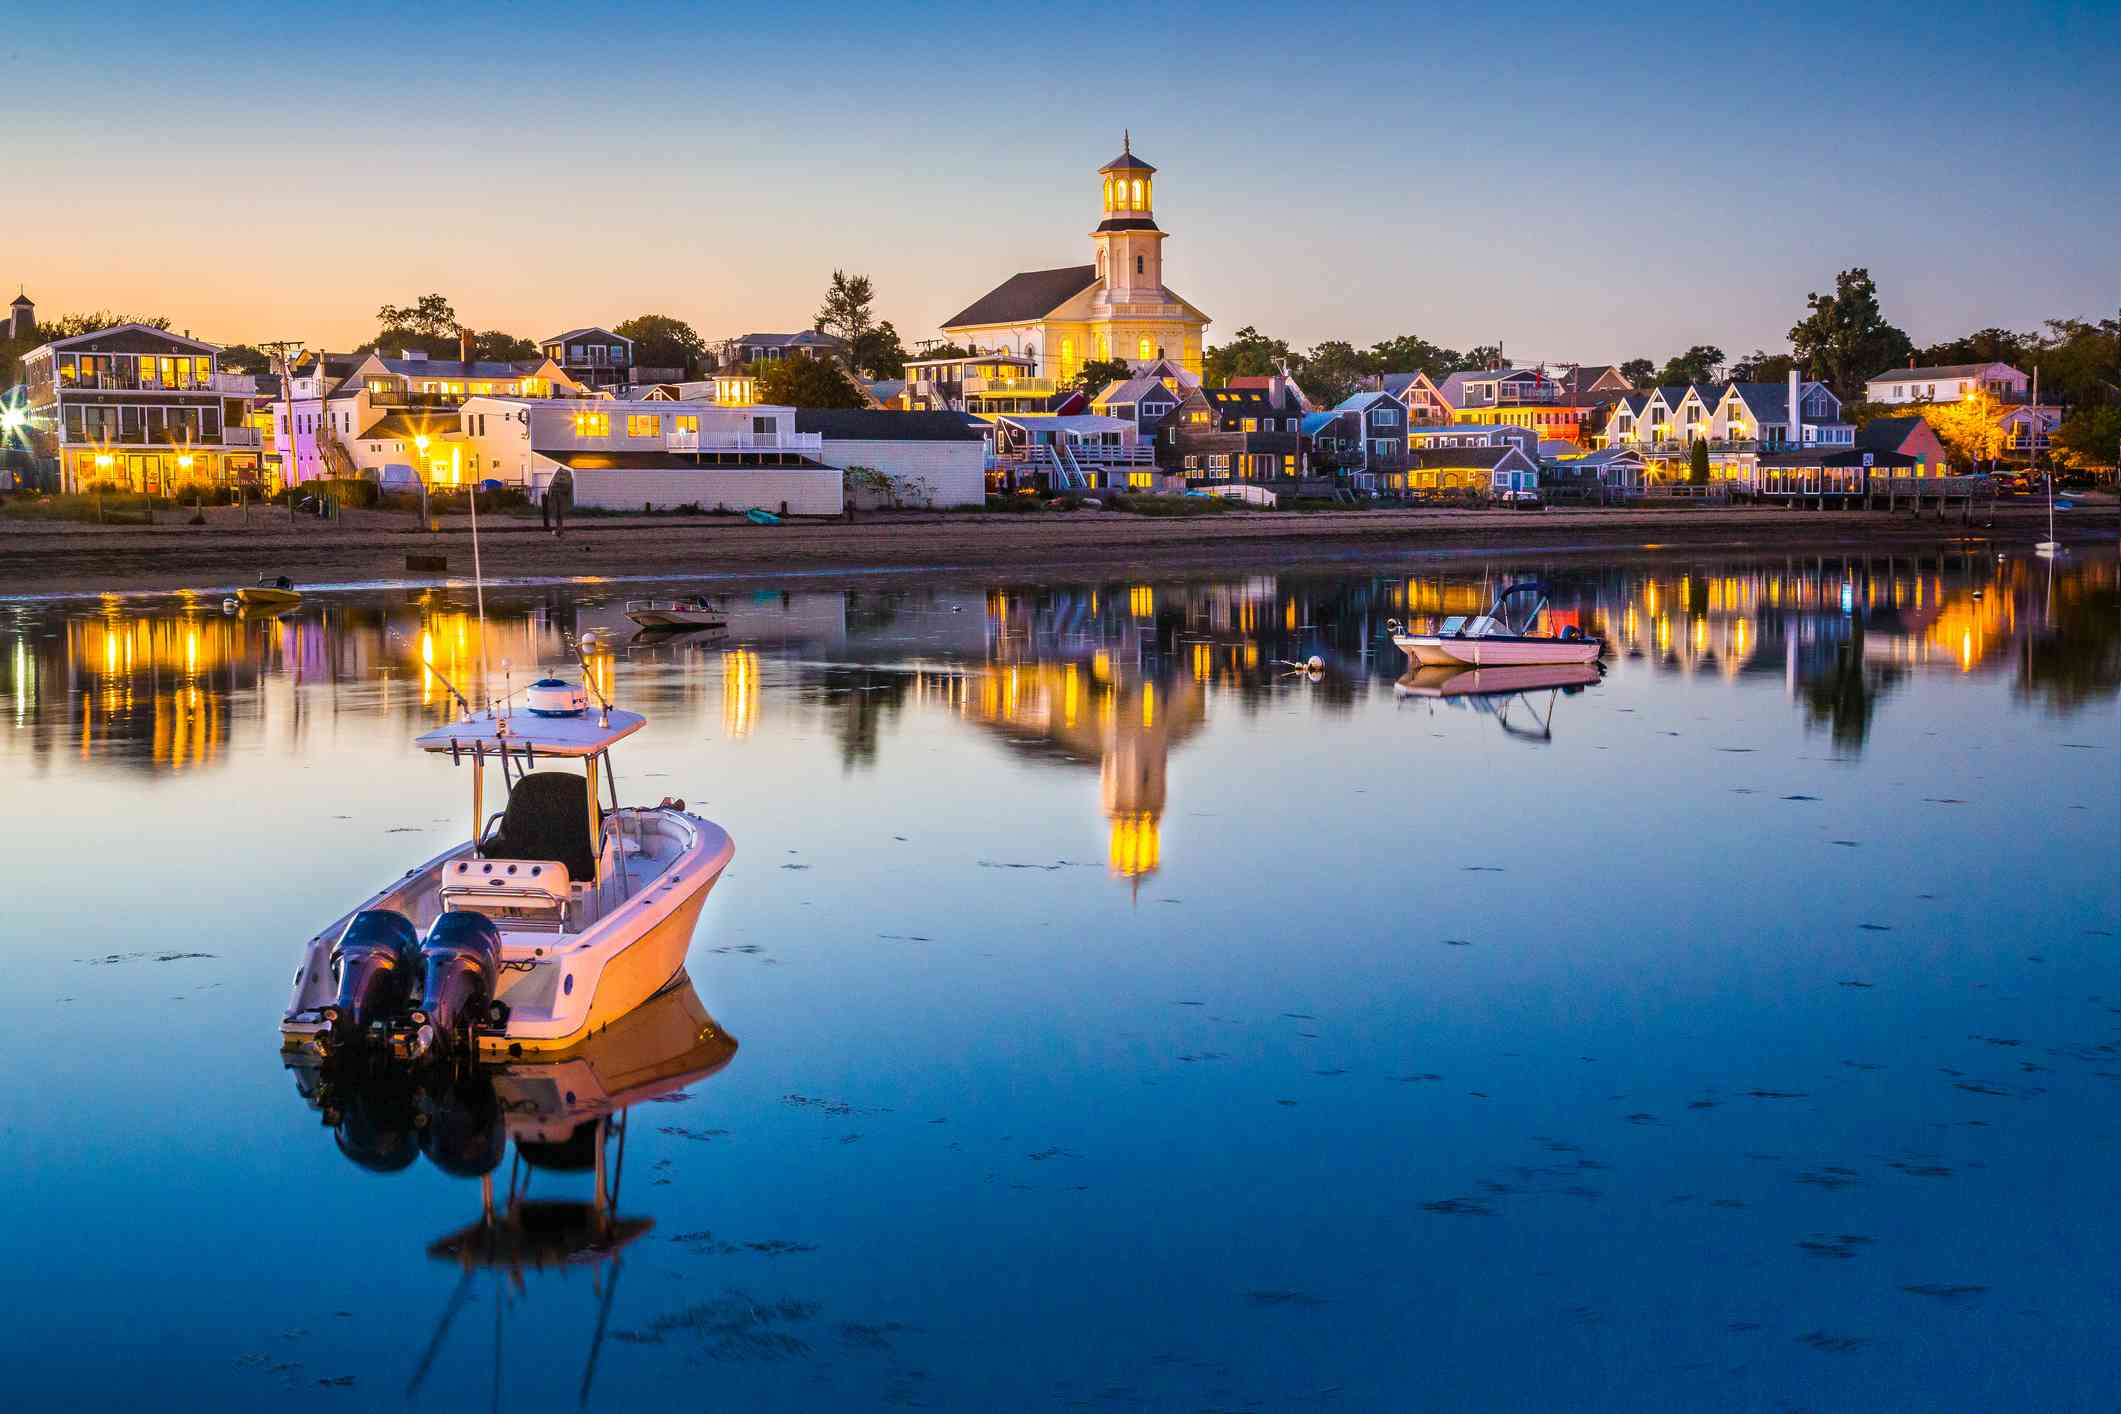 The busy waterfront of charming Provincetown with the glow of blue hour